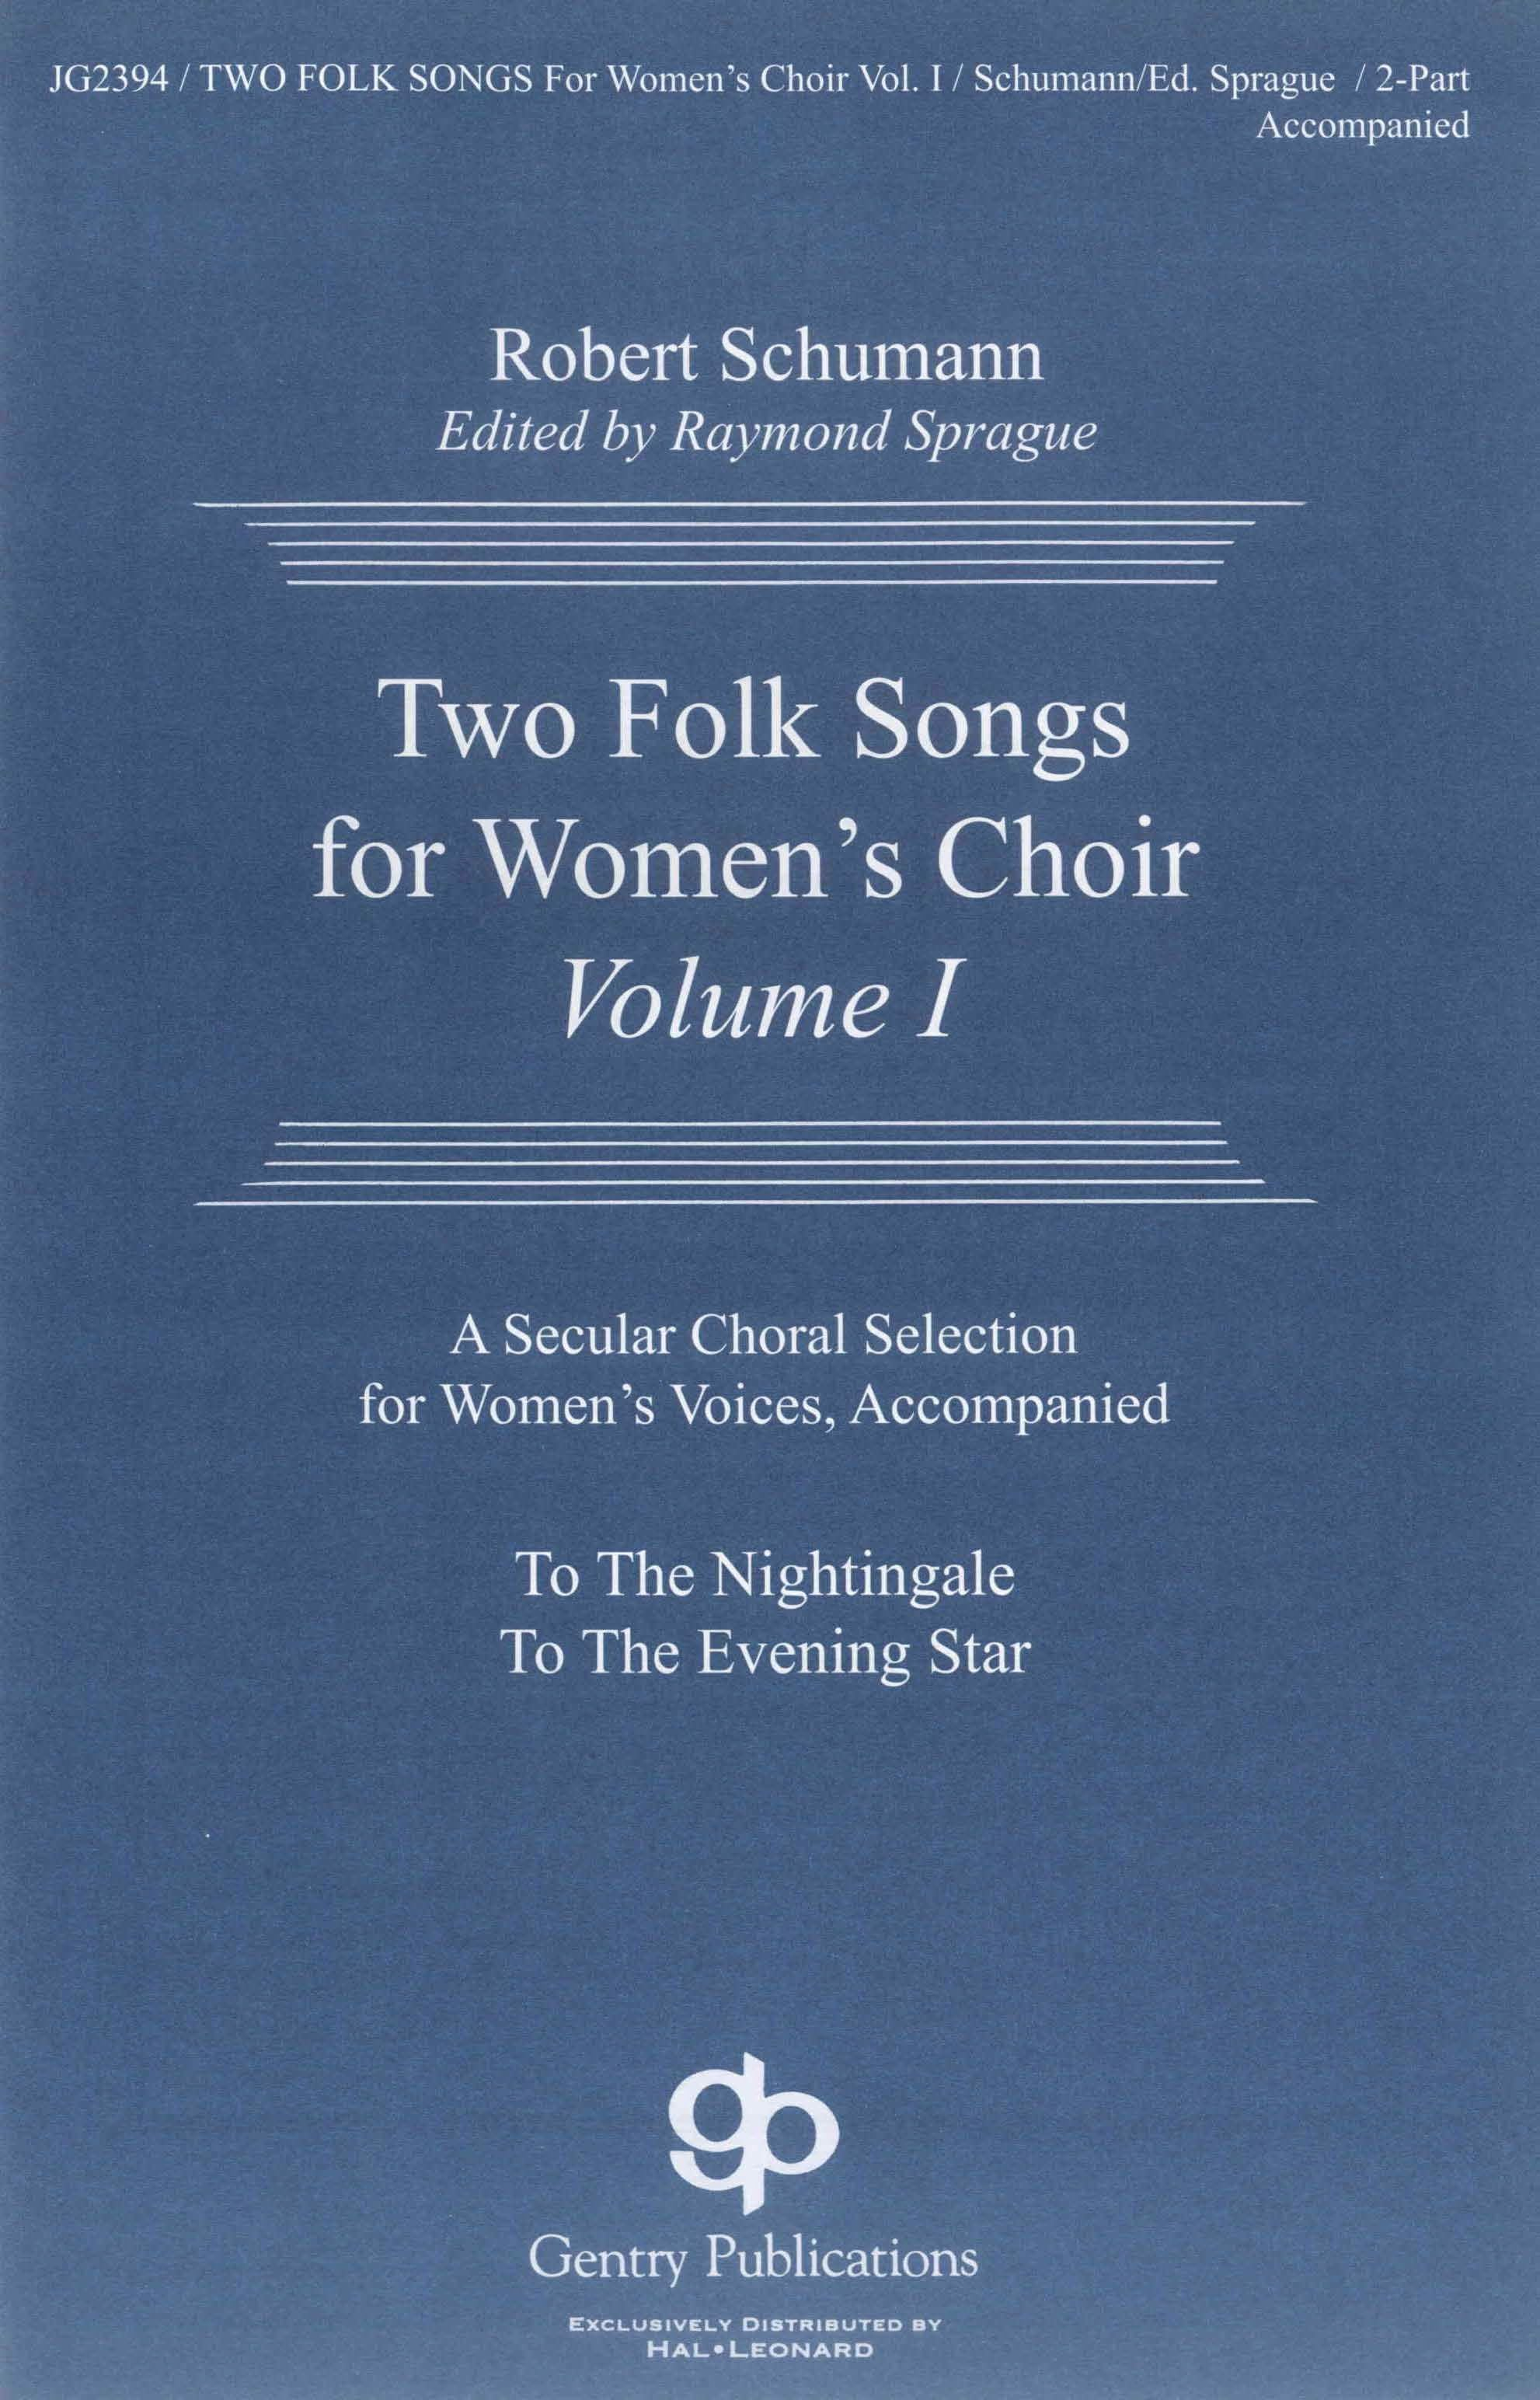 Two Folksongs For Women's Voices